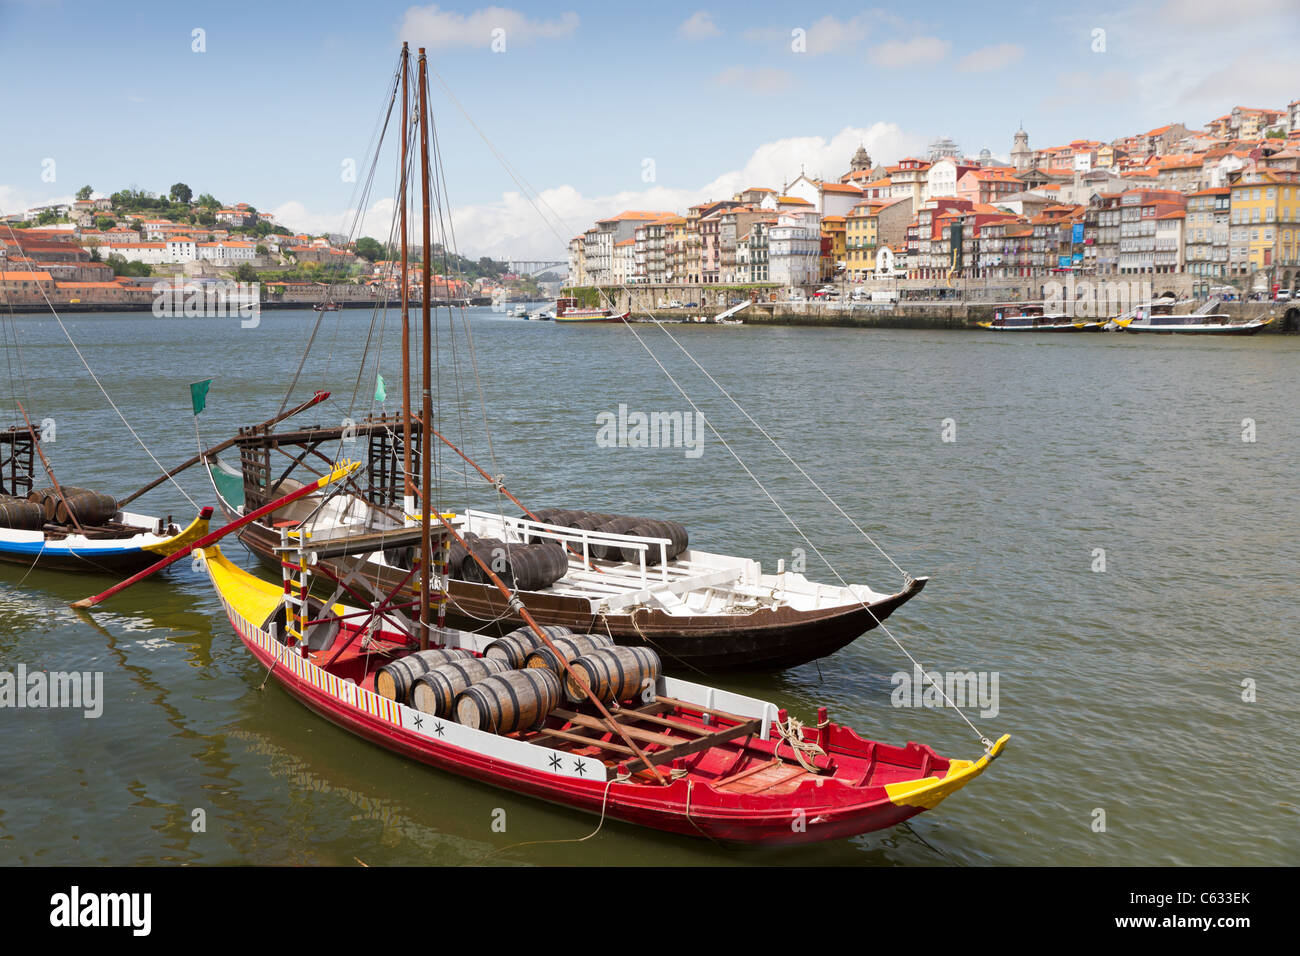 Old Porto at river Duoro with historic Port transporting boats, Oporto, Portugal - Stock Image